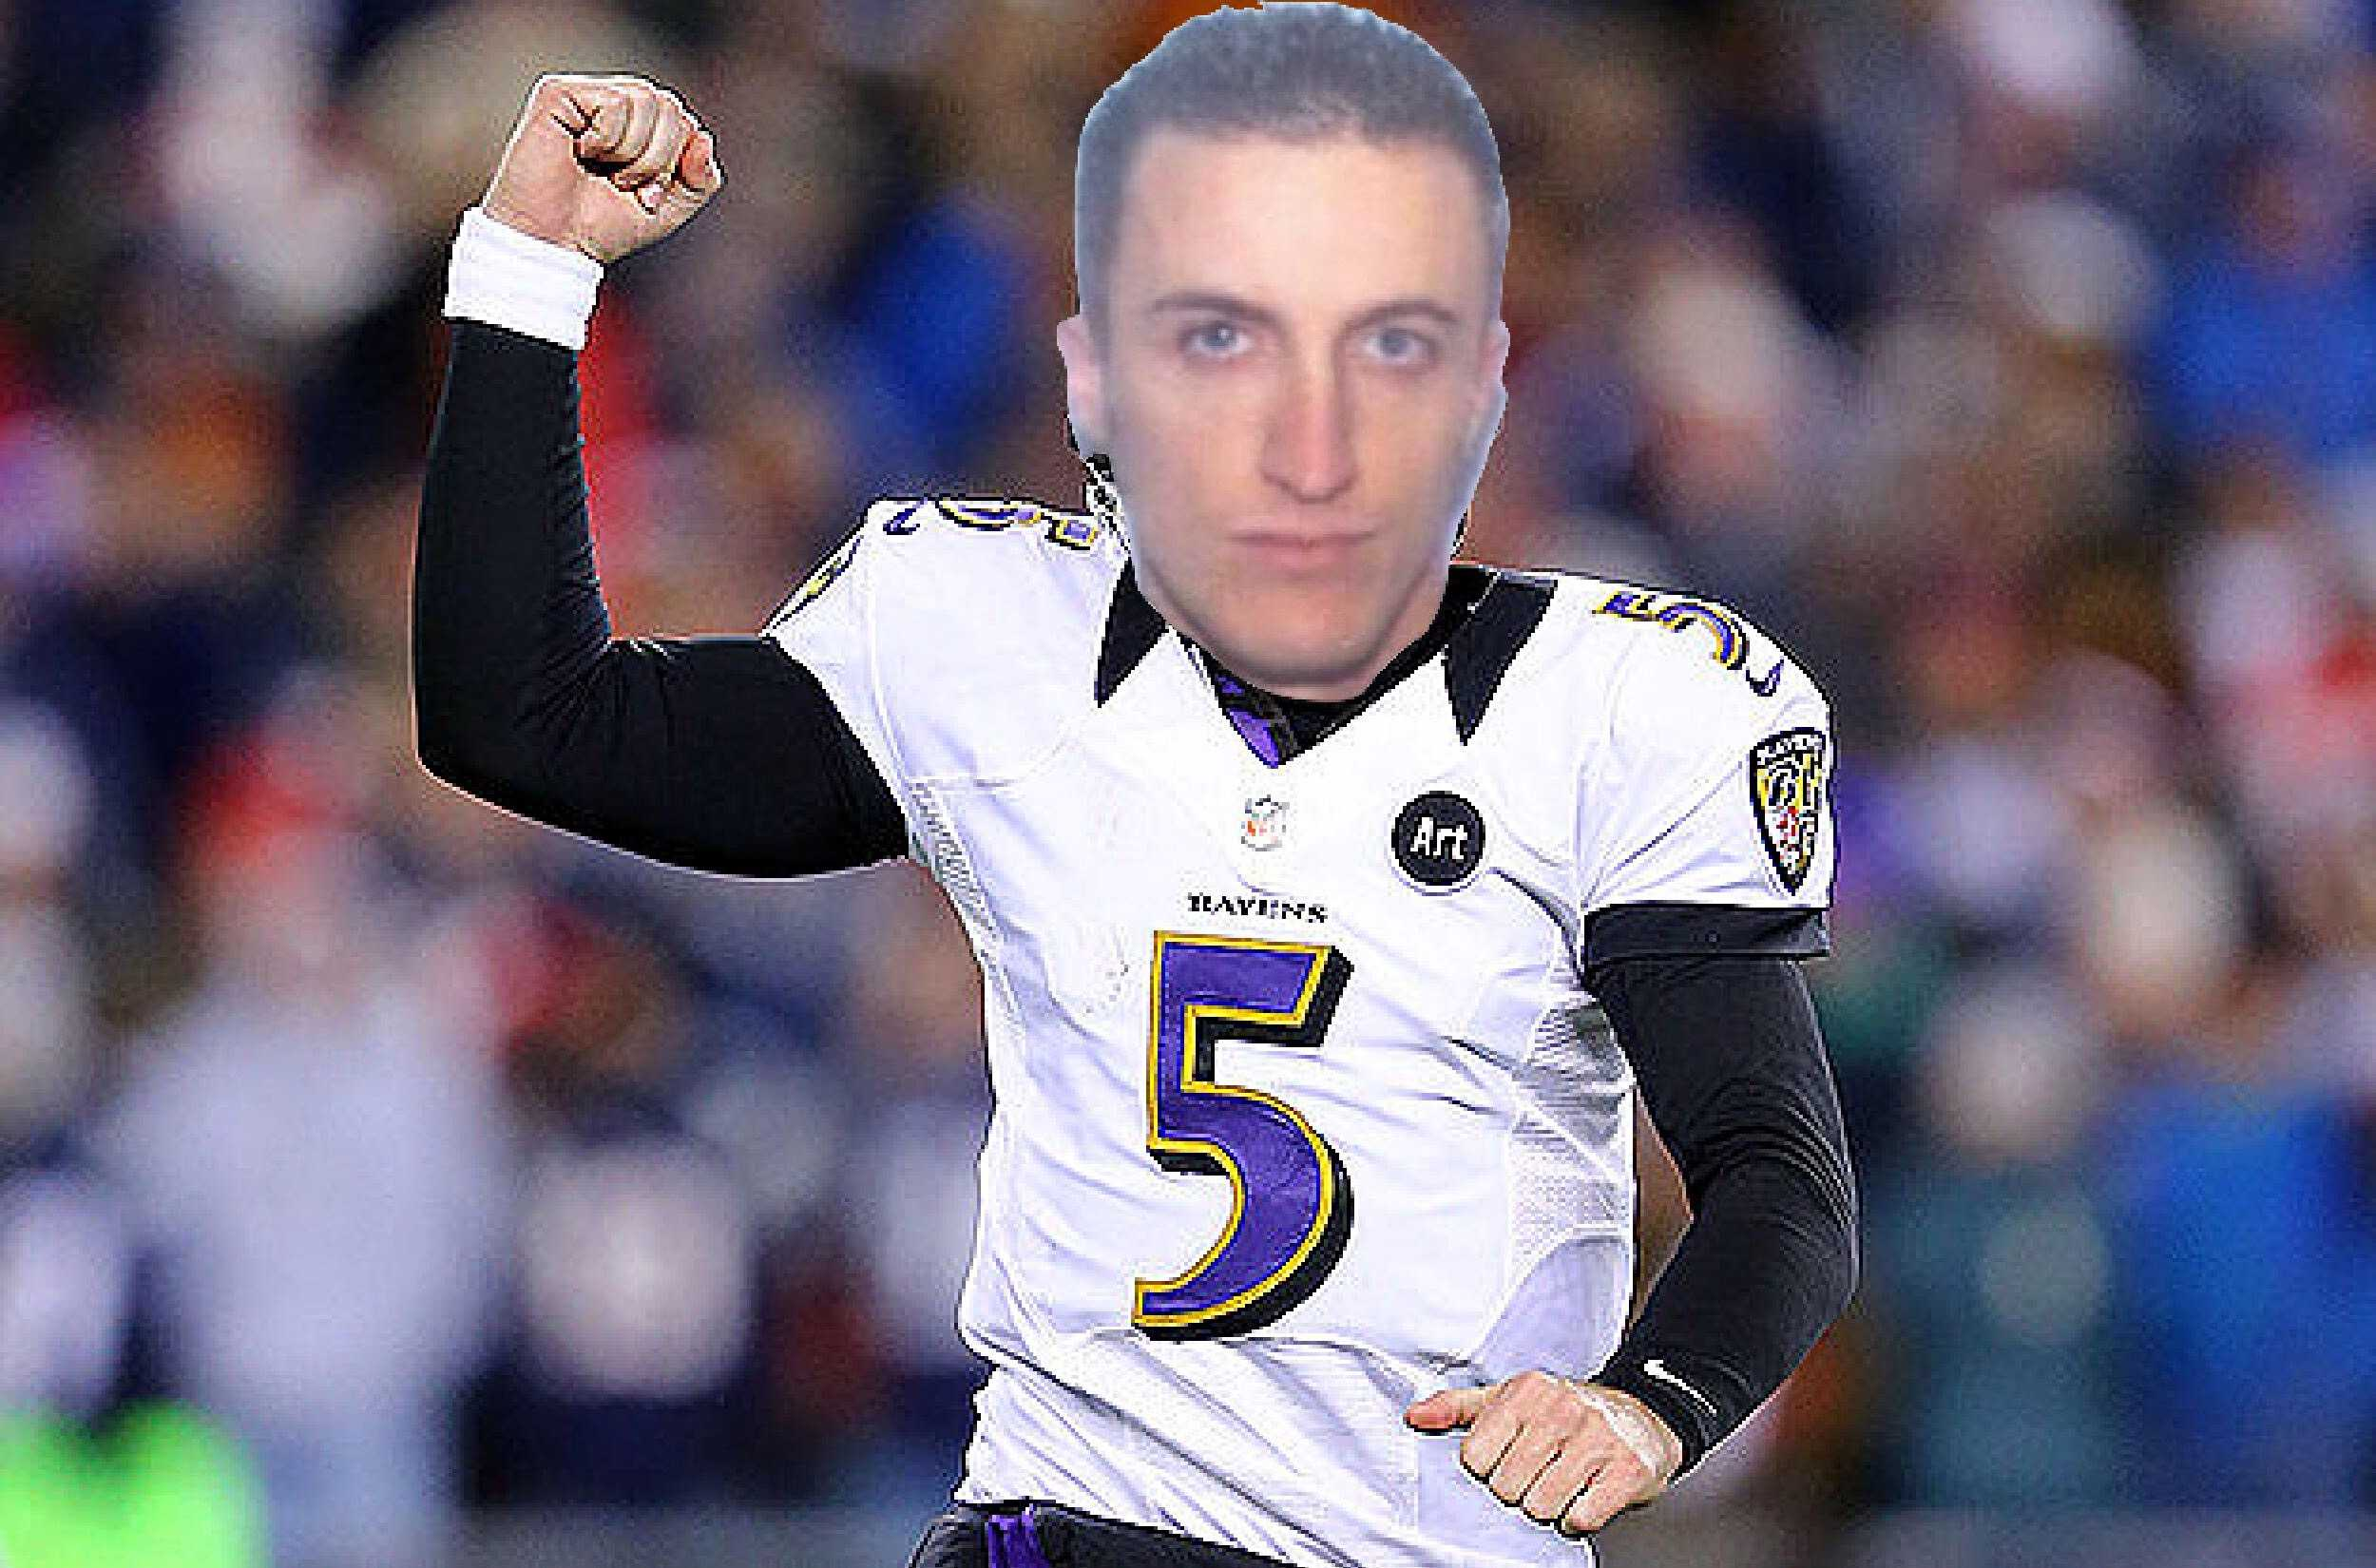 If the Linganore community can raise $250 for Relay for Life, Steelers fan and social studies teacher Mr. Aaron Burch will wear a Ravens jersey for the day.